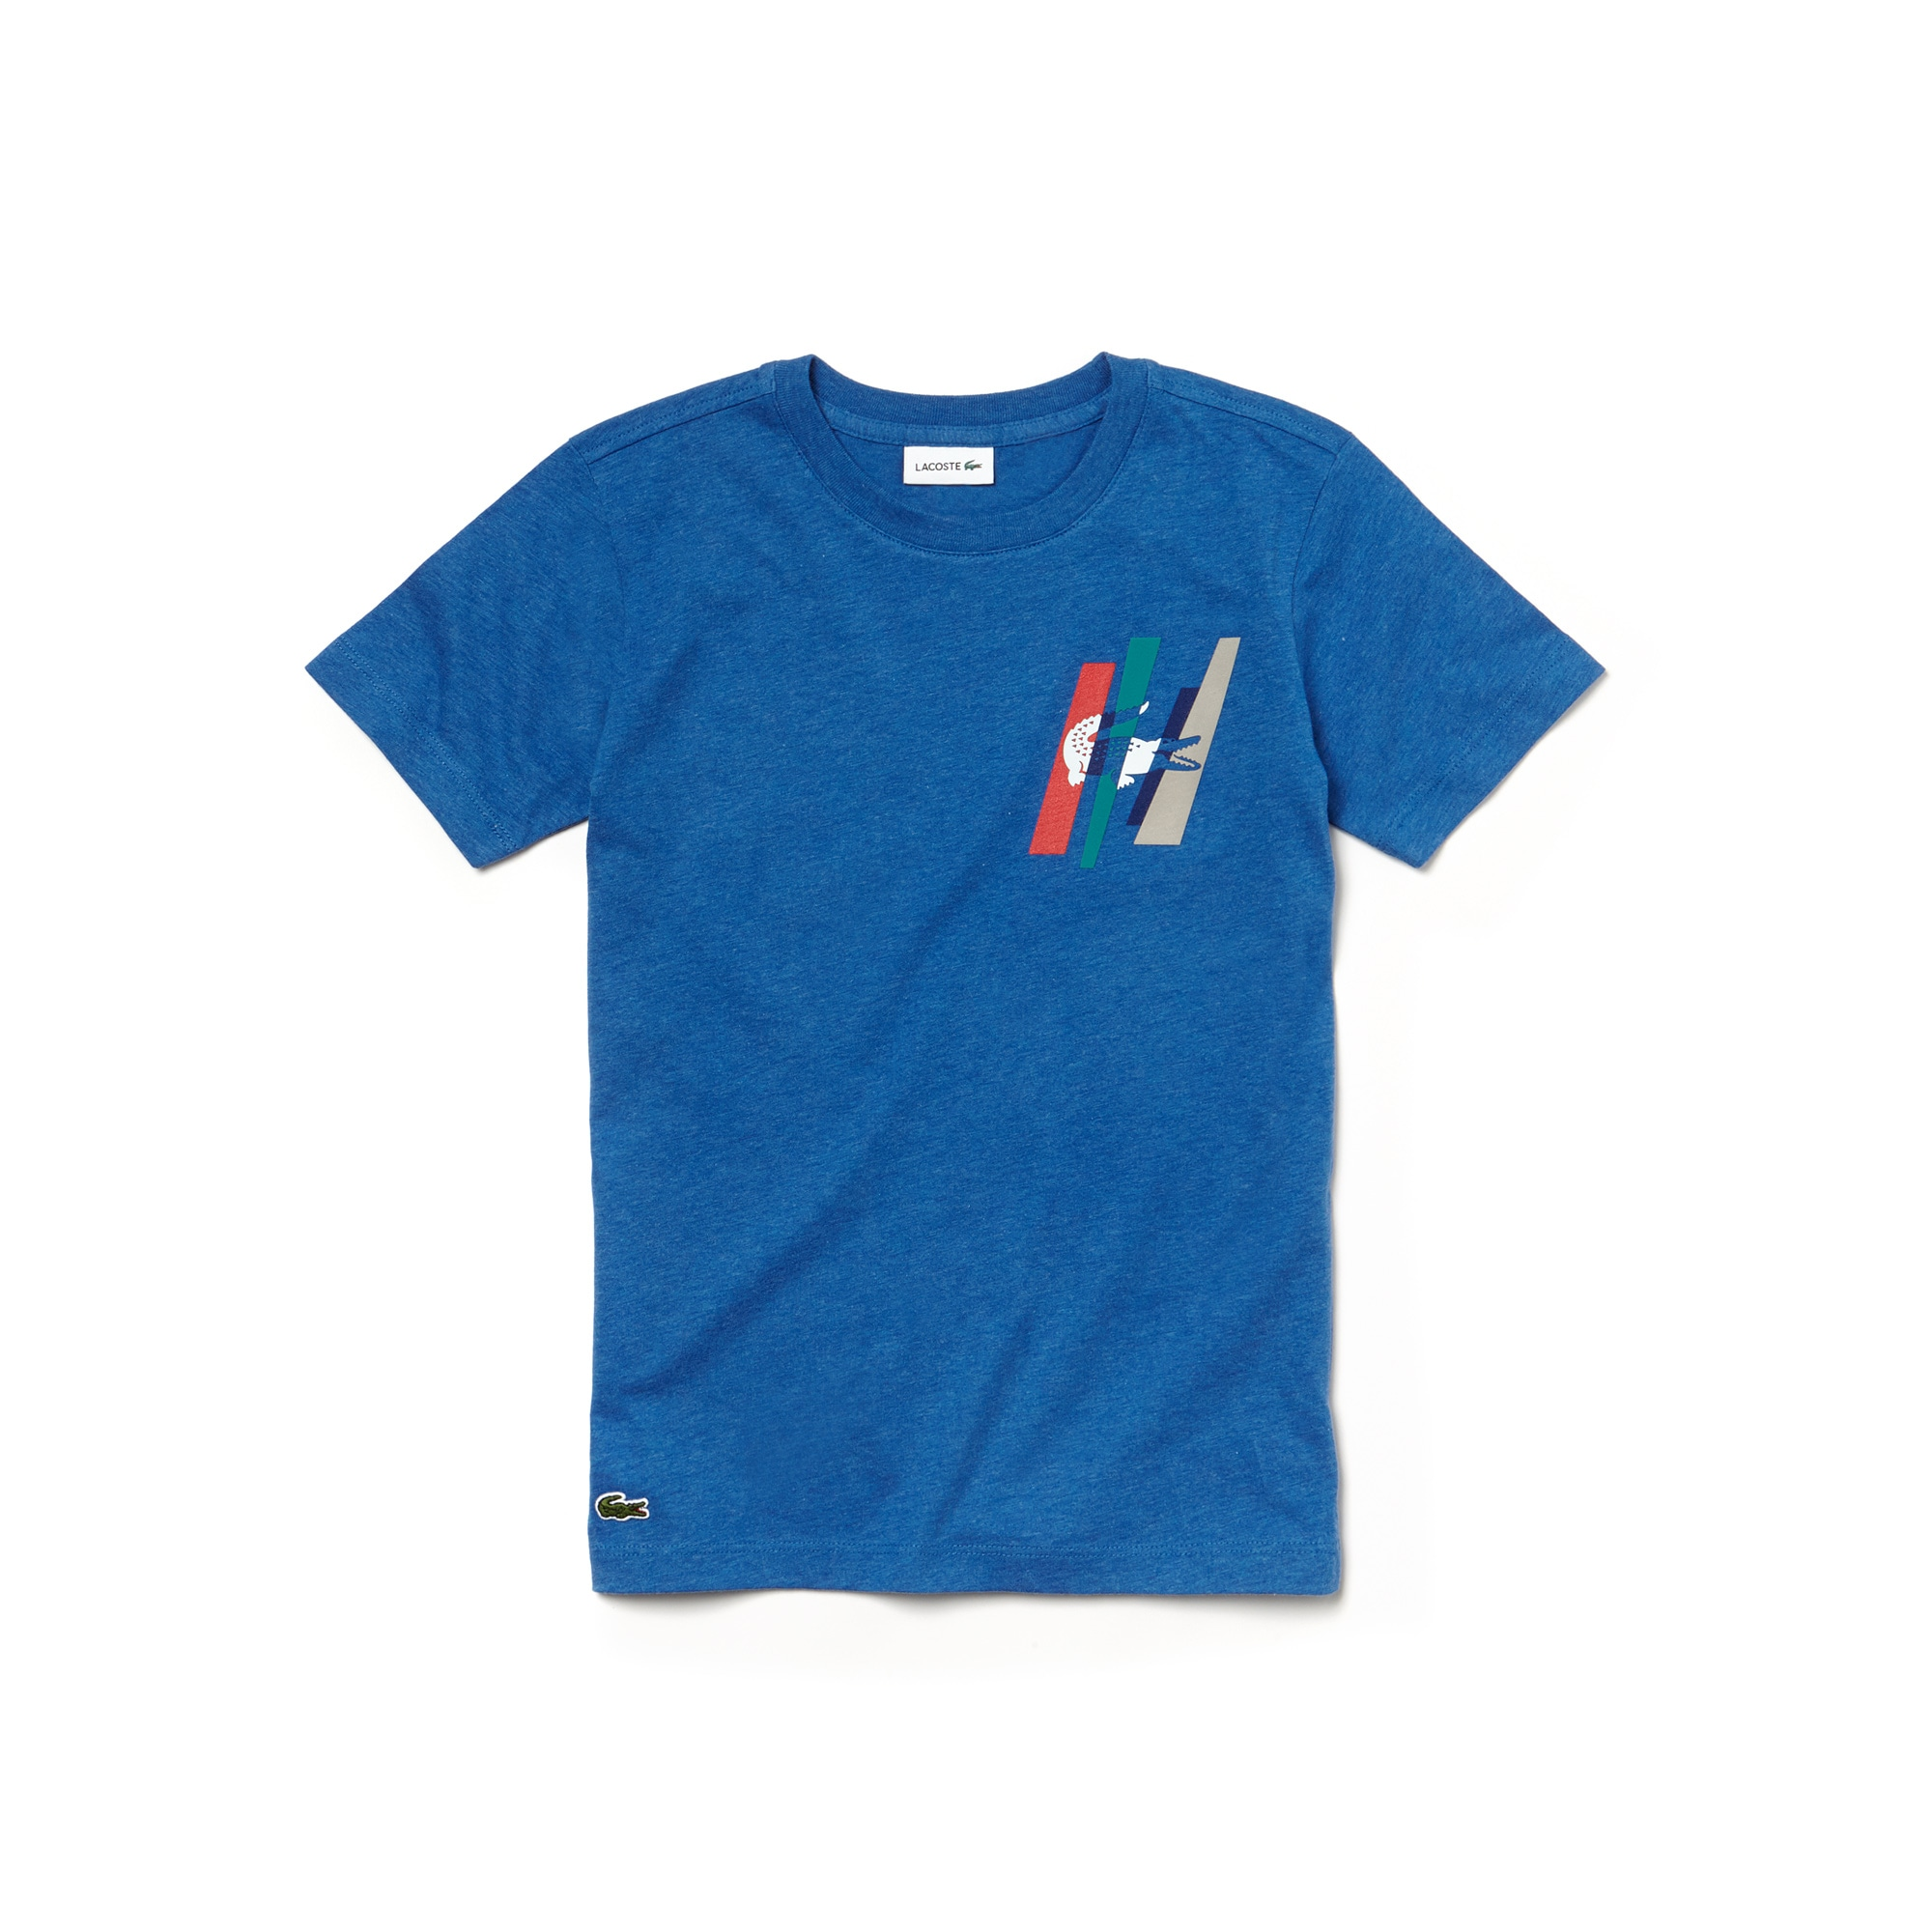 Boys' Crew Neck Crocodile Design Jersey T-shirt